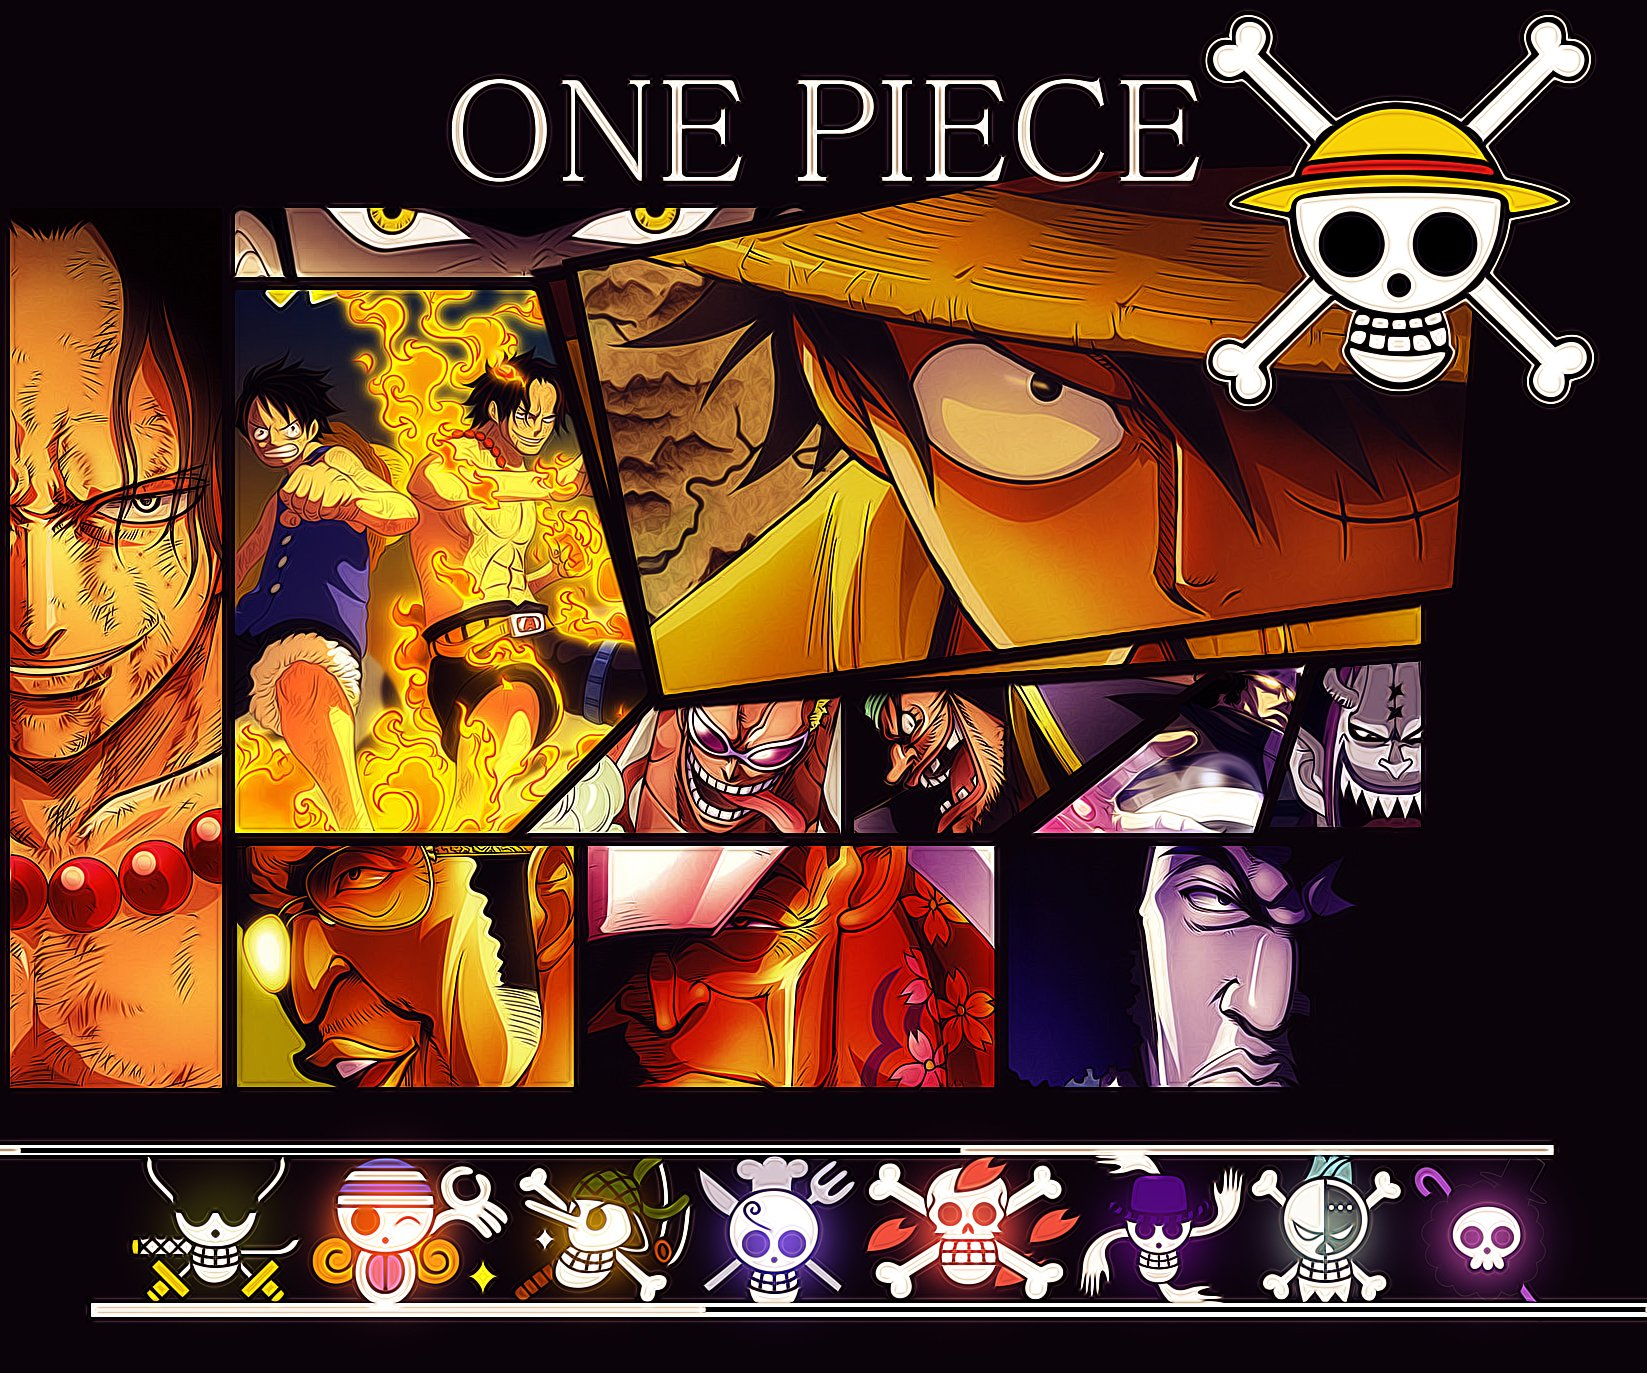 Anime - One Piece  Portgas D. Ace Gekko Moriah Marshall D. Teach Monkey D. Luffy Donquixote Doflamingo Bartholomew Kuma Papel de Parede